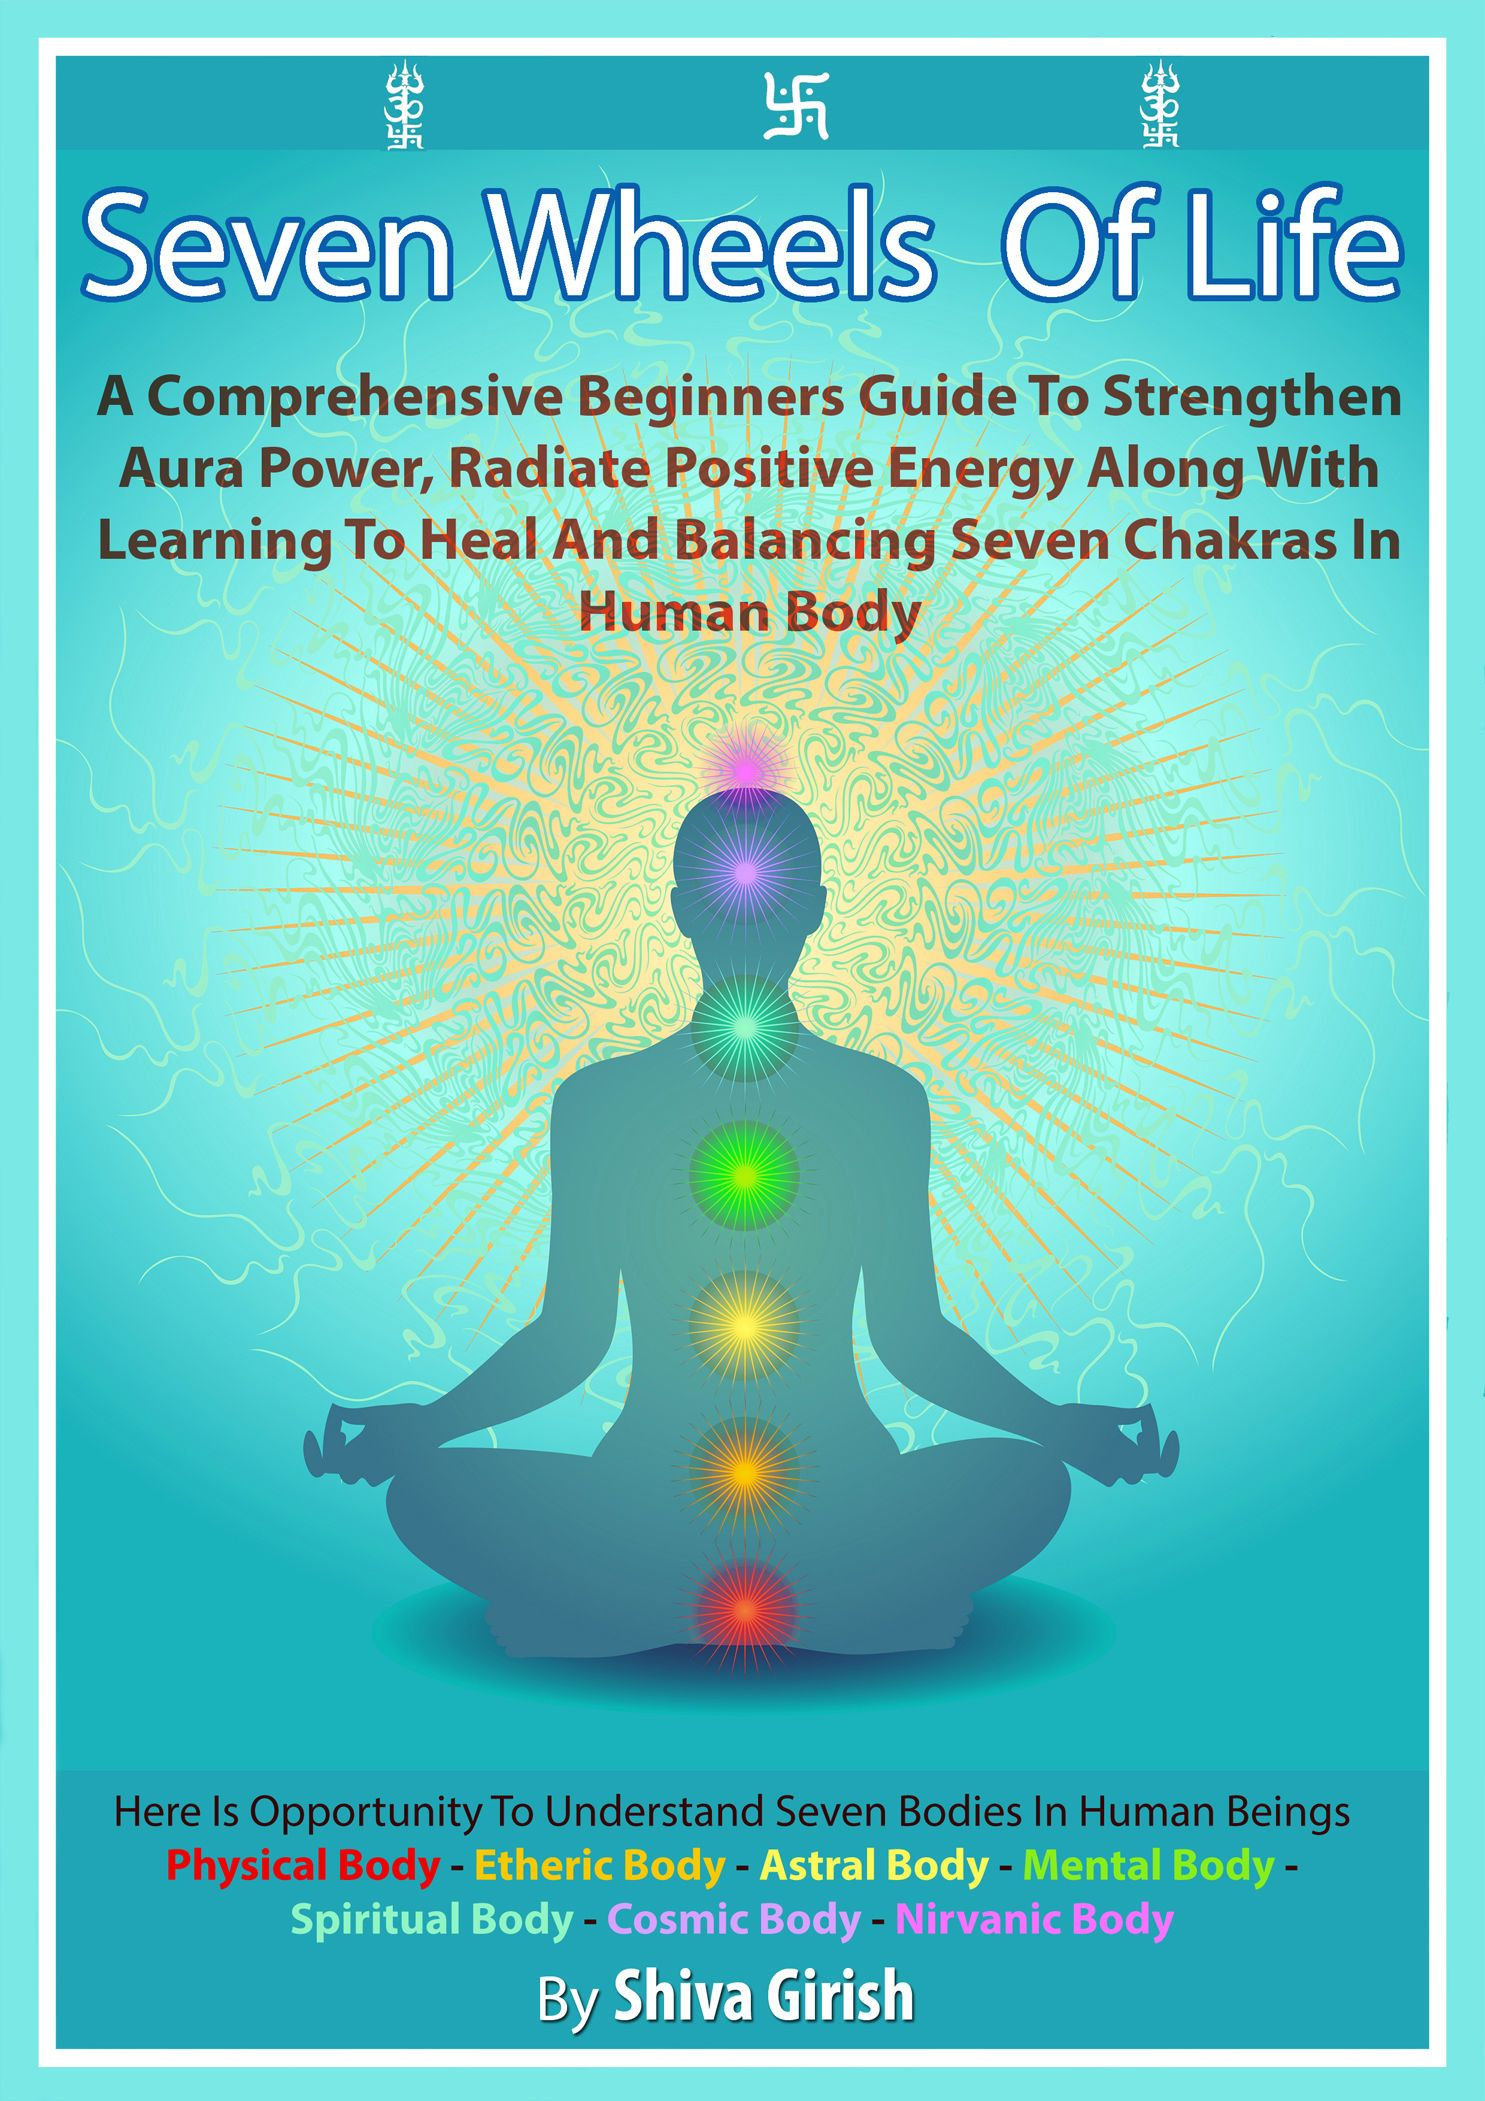 Preview And Download Books By Shiva Girish Including Seven Wheels Of Life A Comprehen Chakras In Human Body Wheel Of Life Meditation Techniques For Beginners